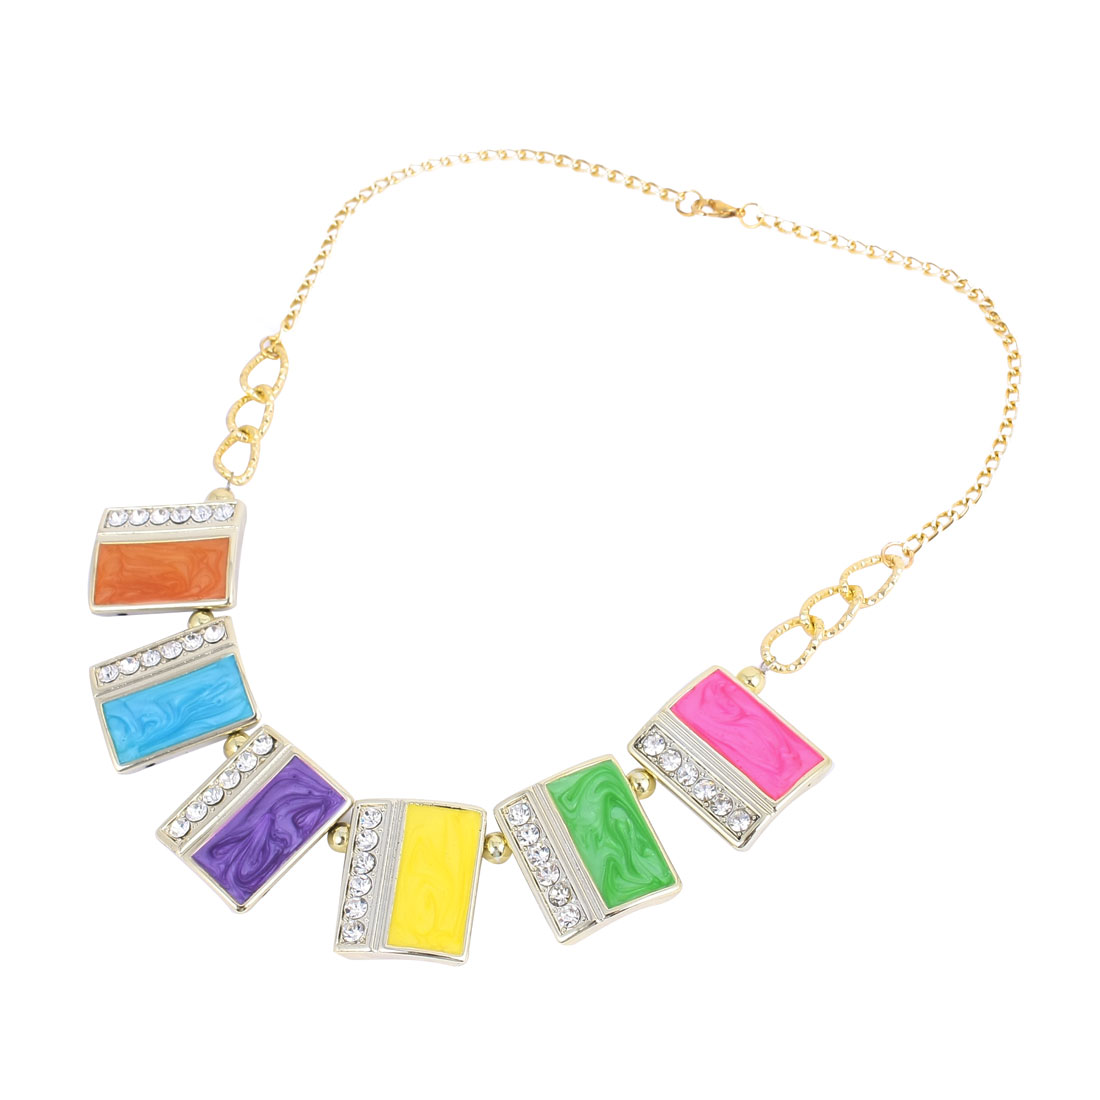 Multicolor Rectangle Shape Faux Crystal Beads Necklace for Lady Woman